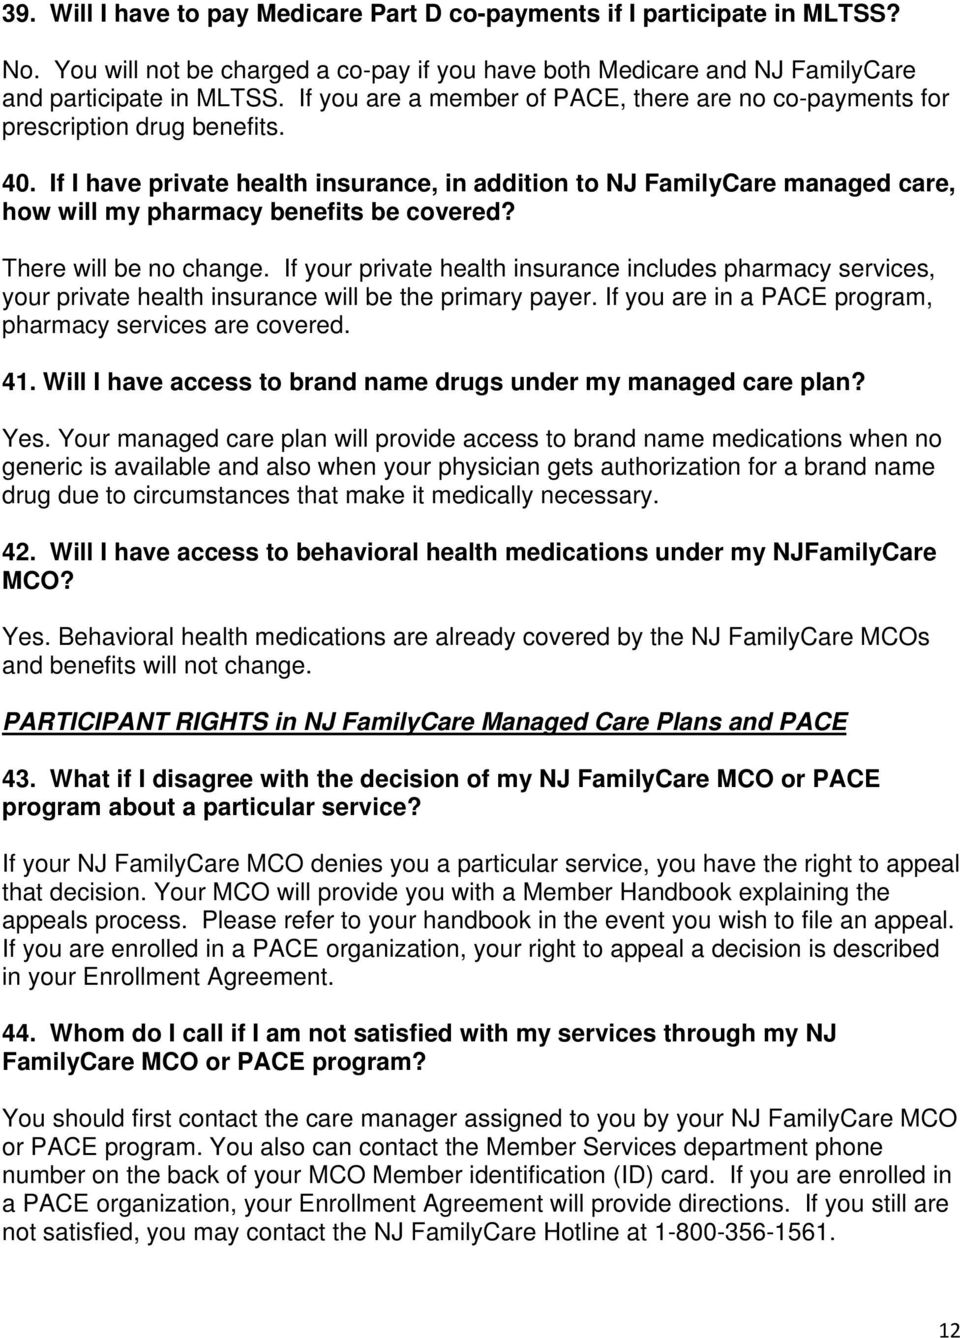 If I have private health insurance, in addition to NJ FamilyCare managed care, how will my pharmacy benefits be covered? There will be no change.